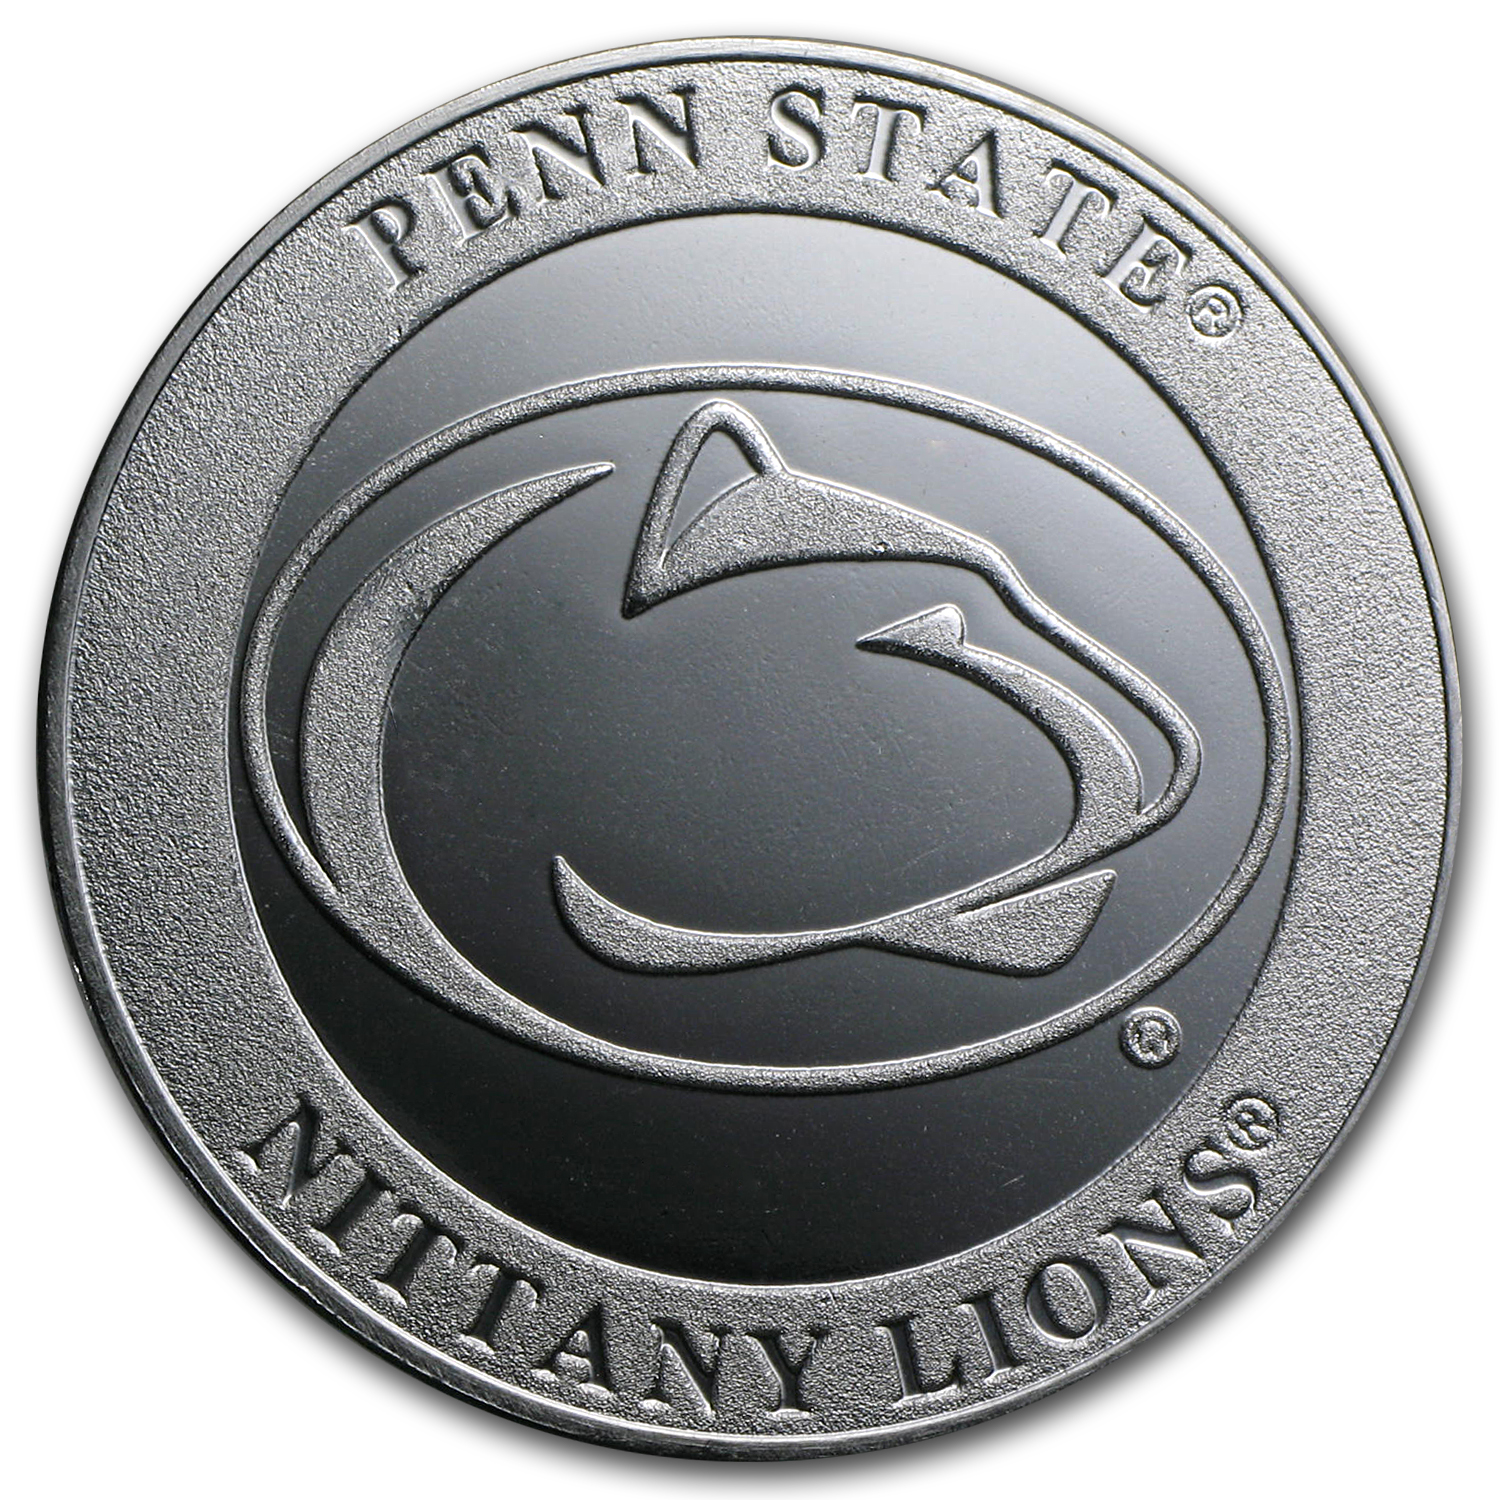 1 oz Silver Round - Pennsylvania State University